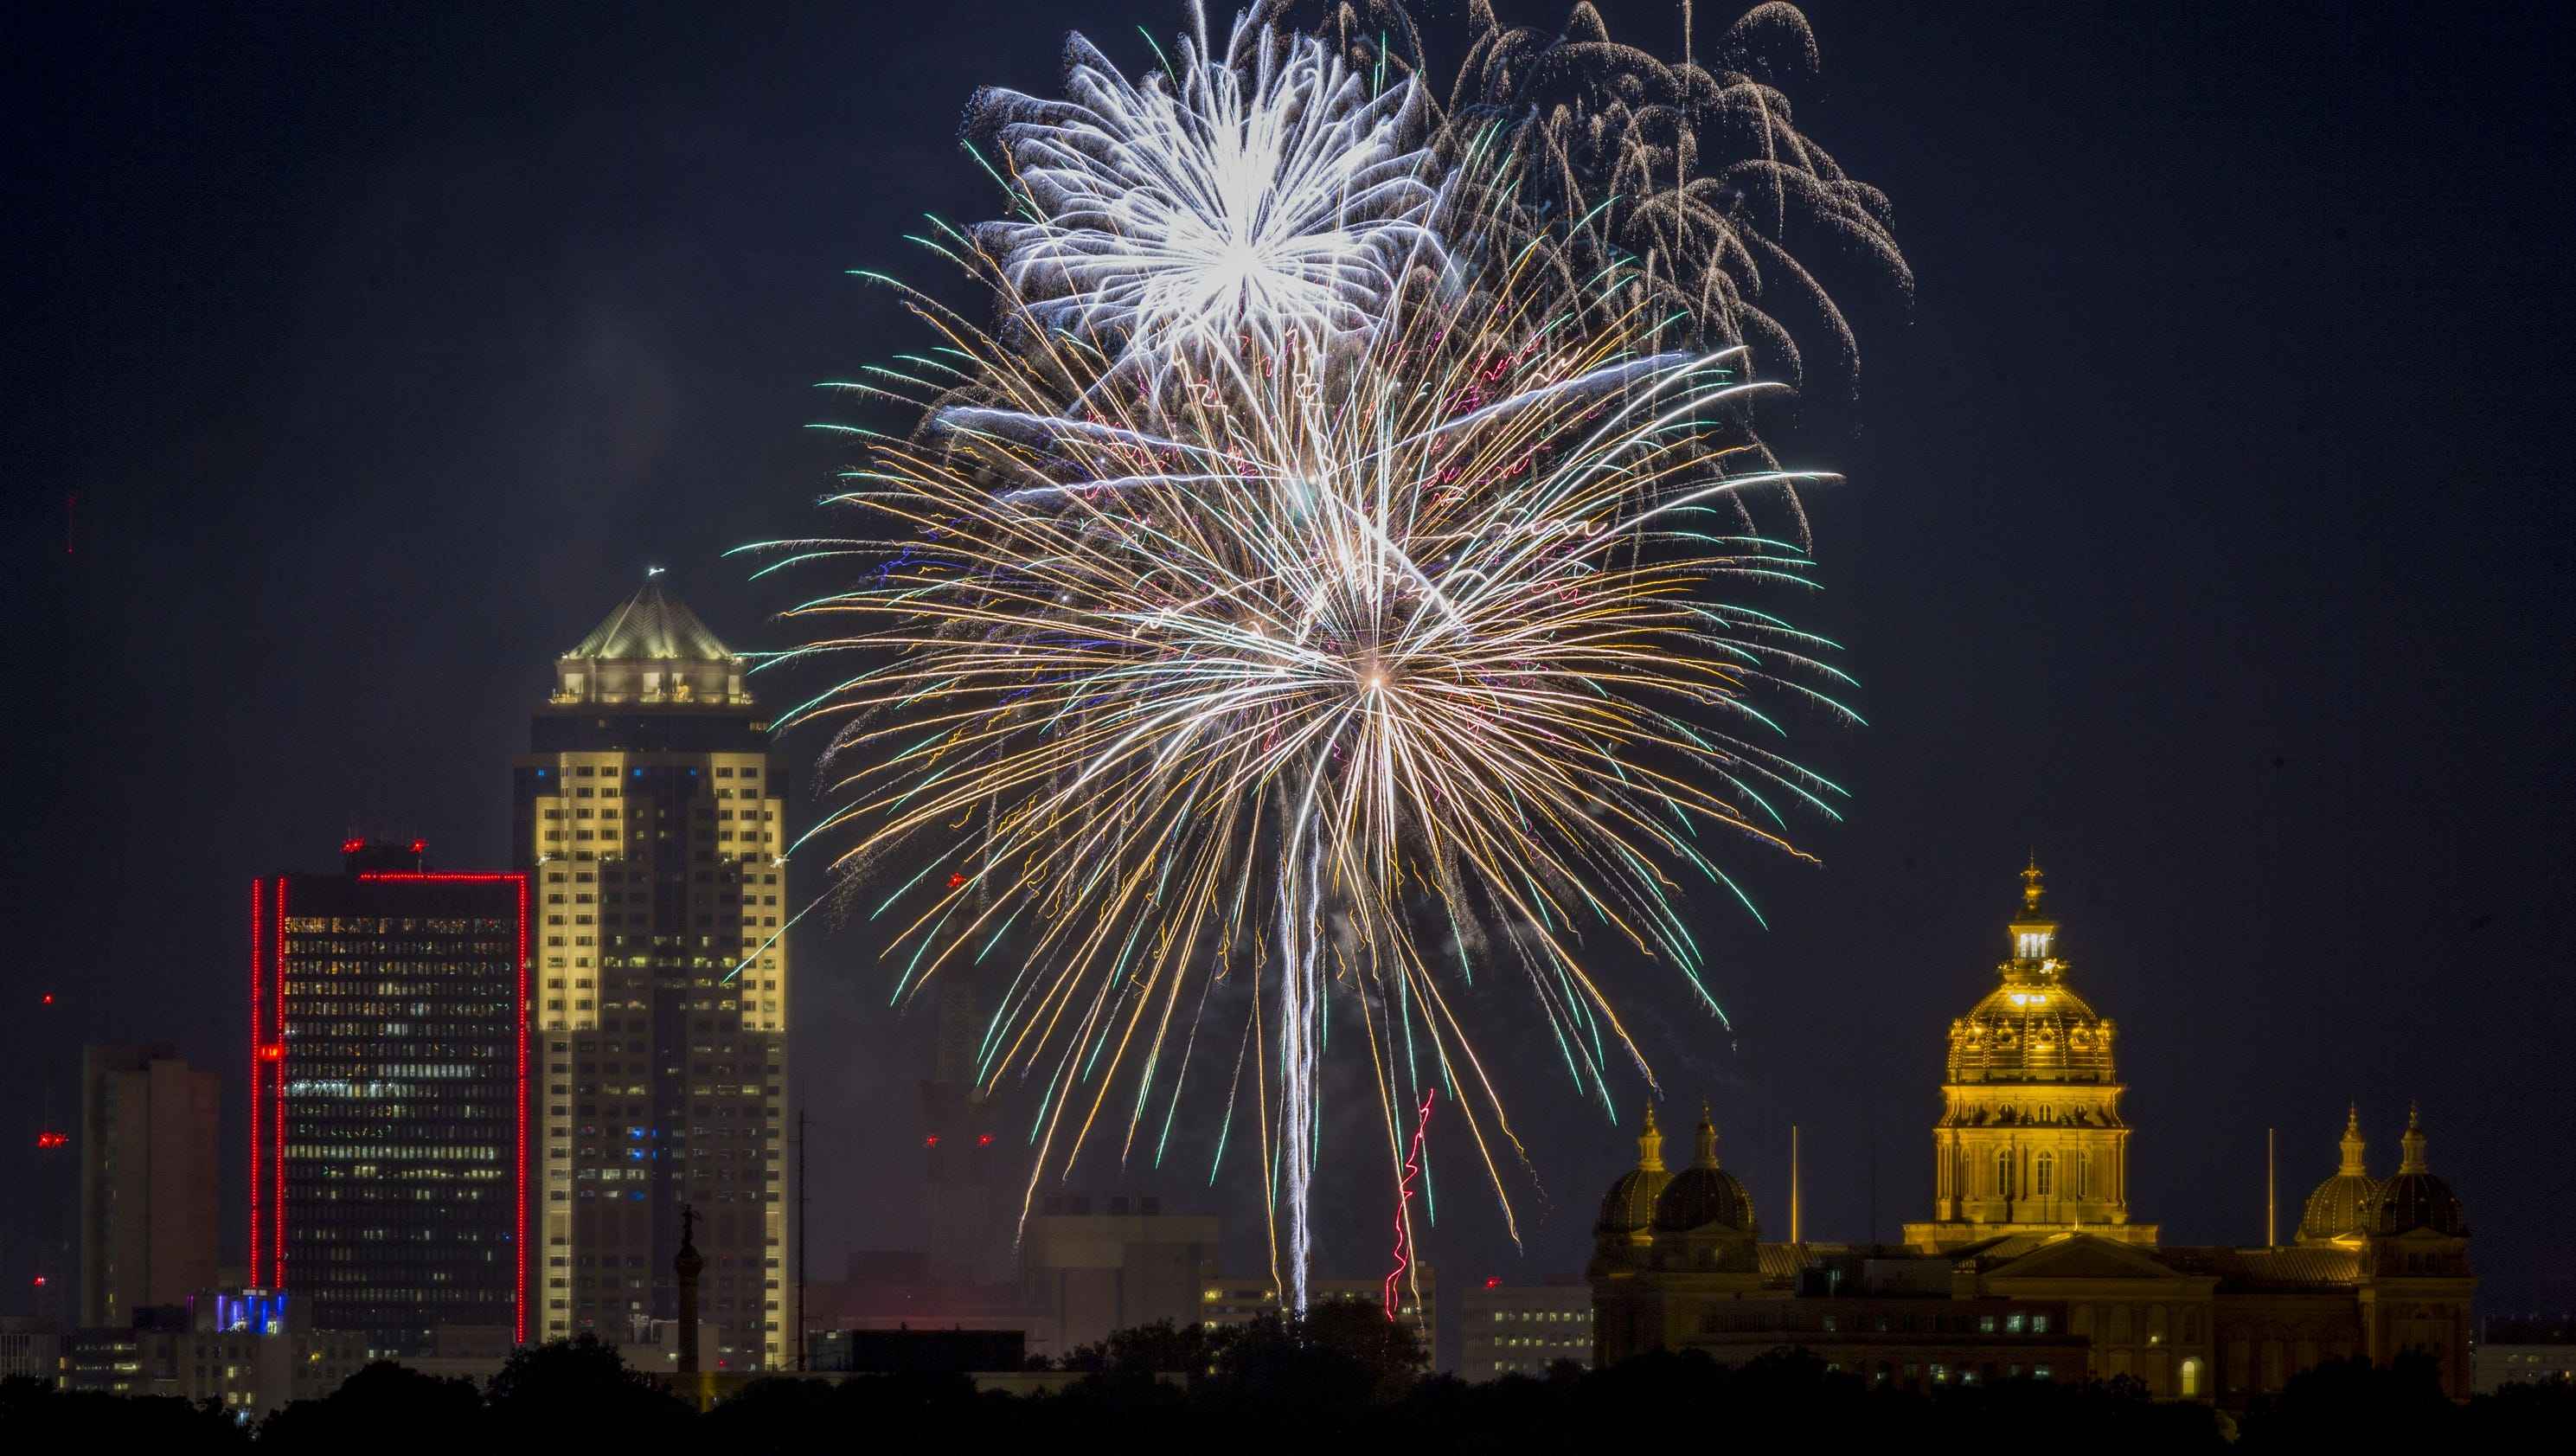 legal fireworks probably limited in des moines metro